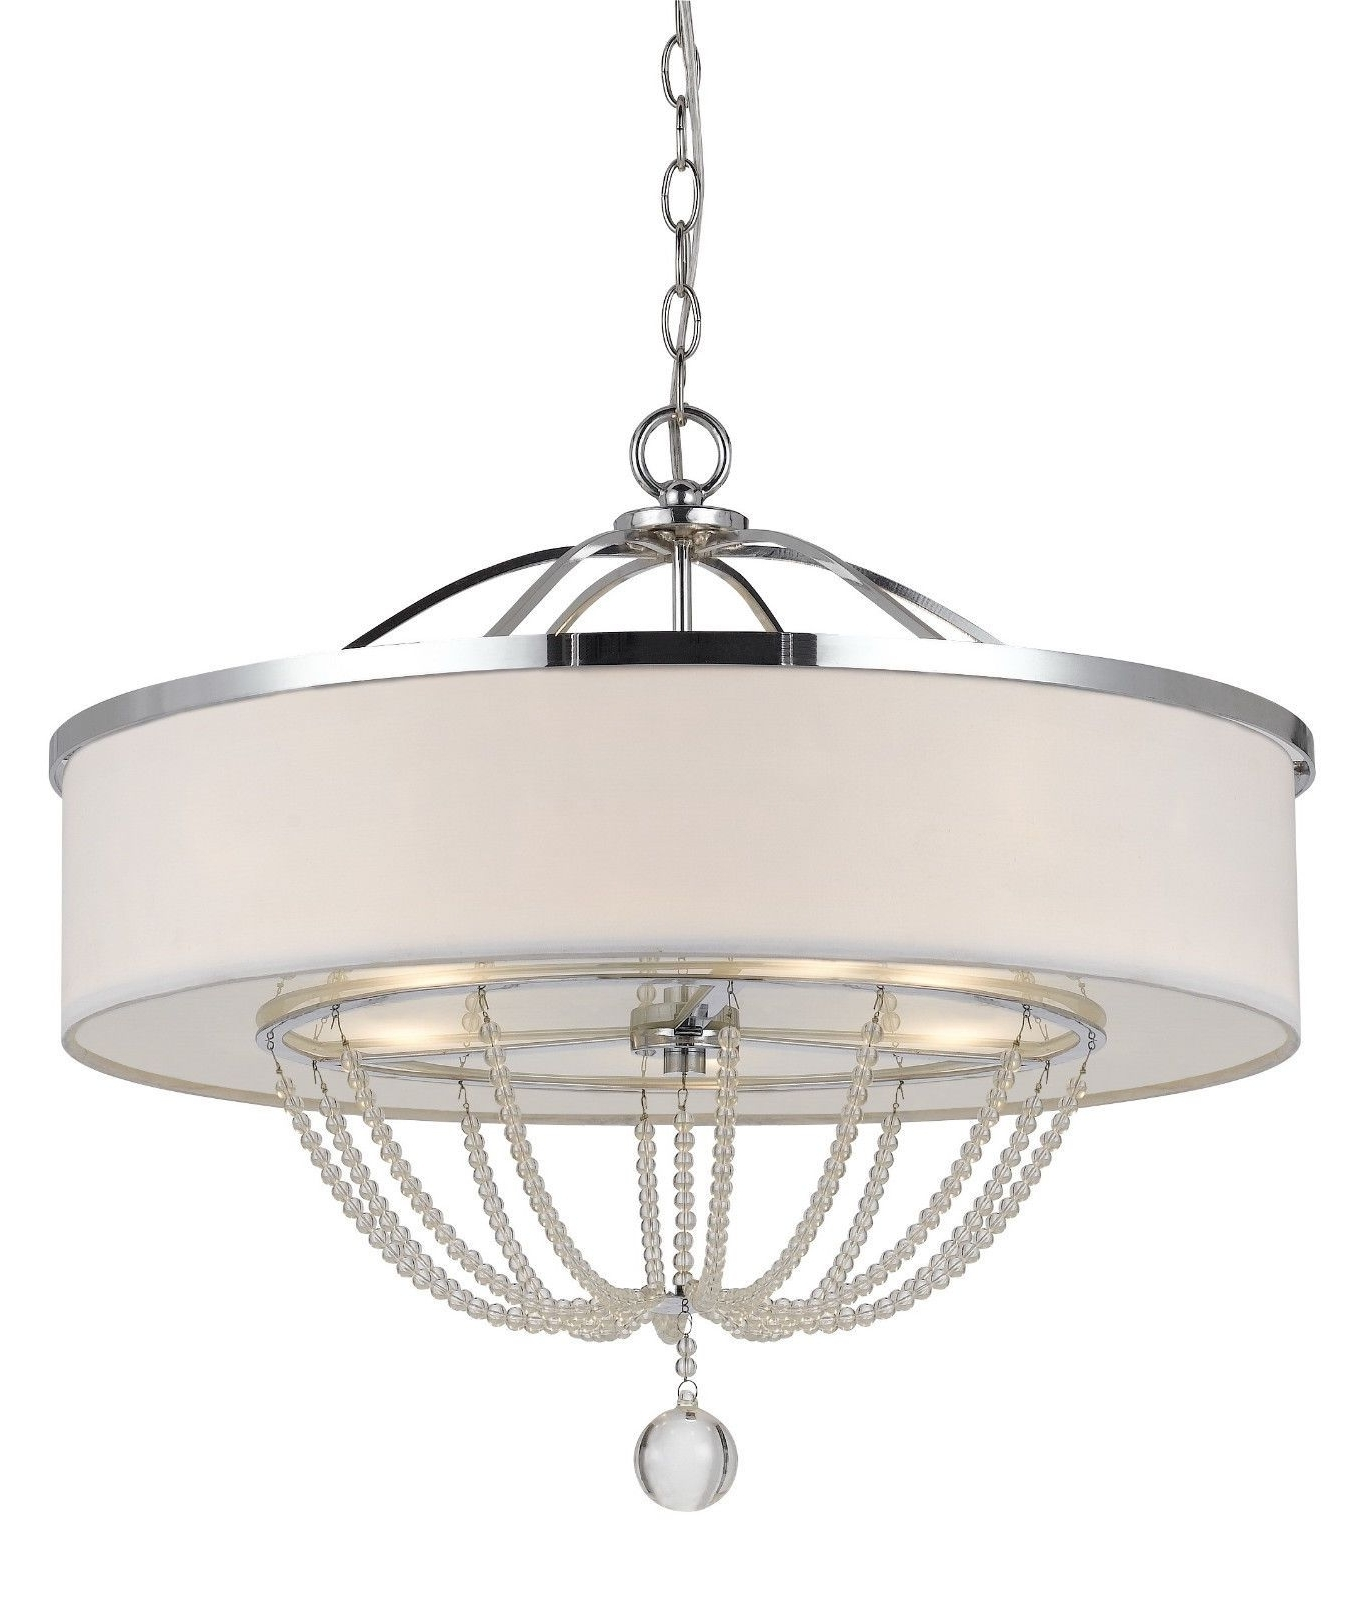 Most Current Modern White Chandelier With Modern White Fabric With Chrome Metal & Crystals Drum Pendant Light (View 15 of 20)